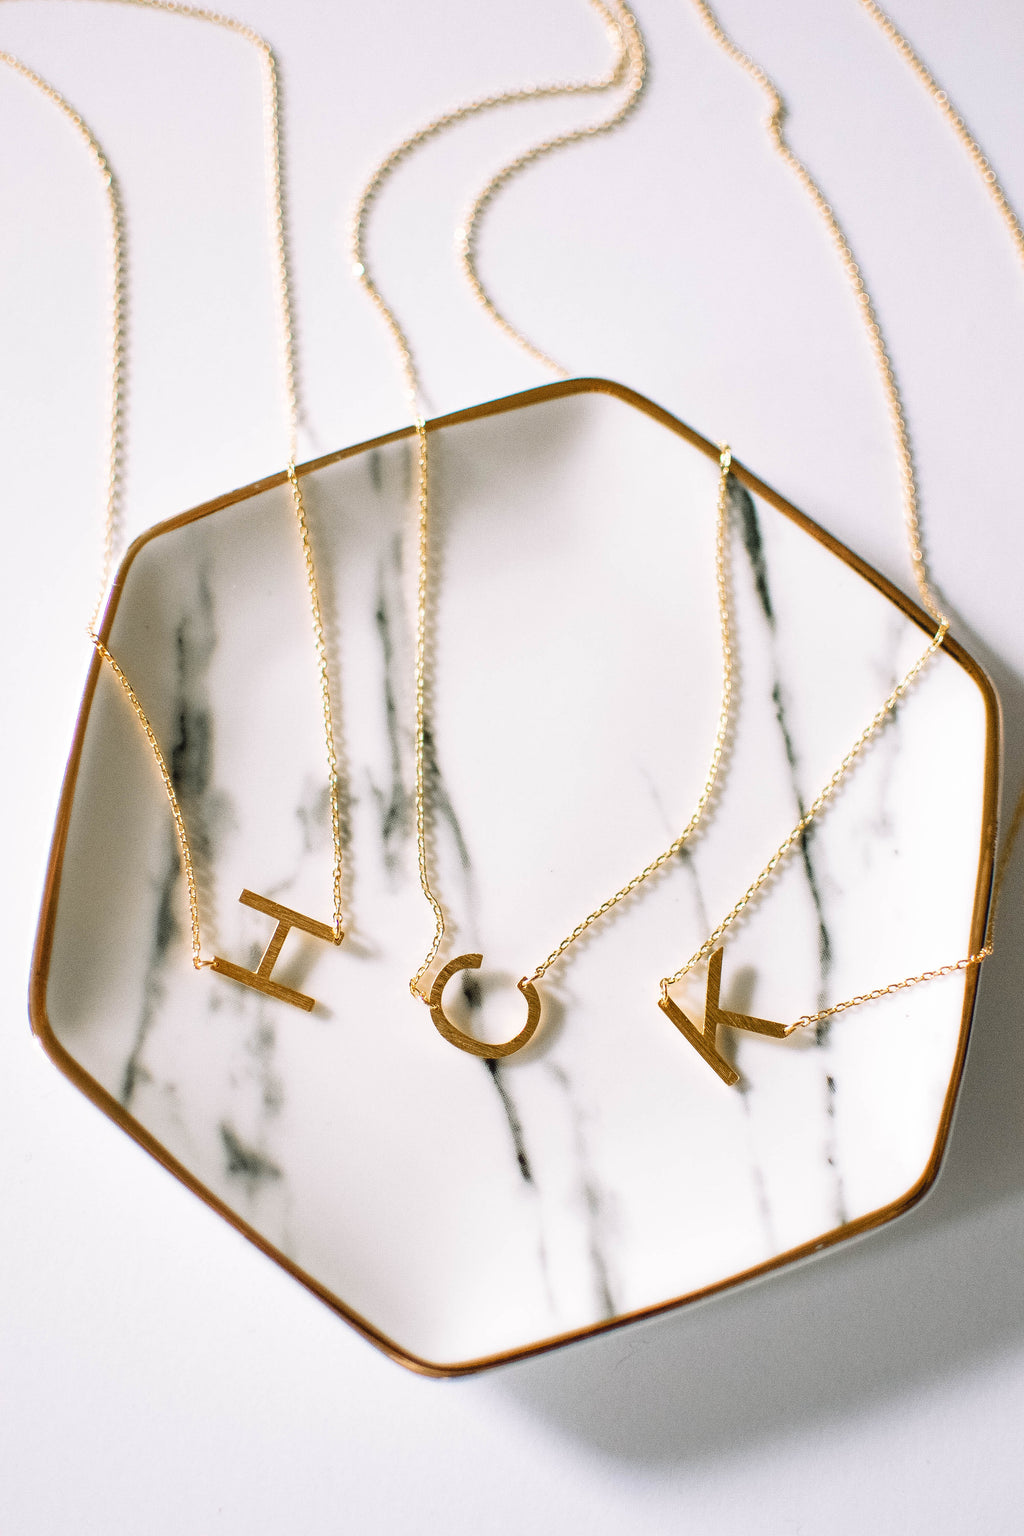 Gold Brushed Letter Necklace - K - Mint Pop Shop